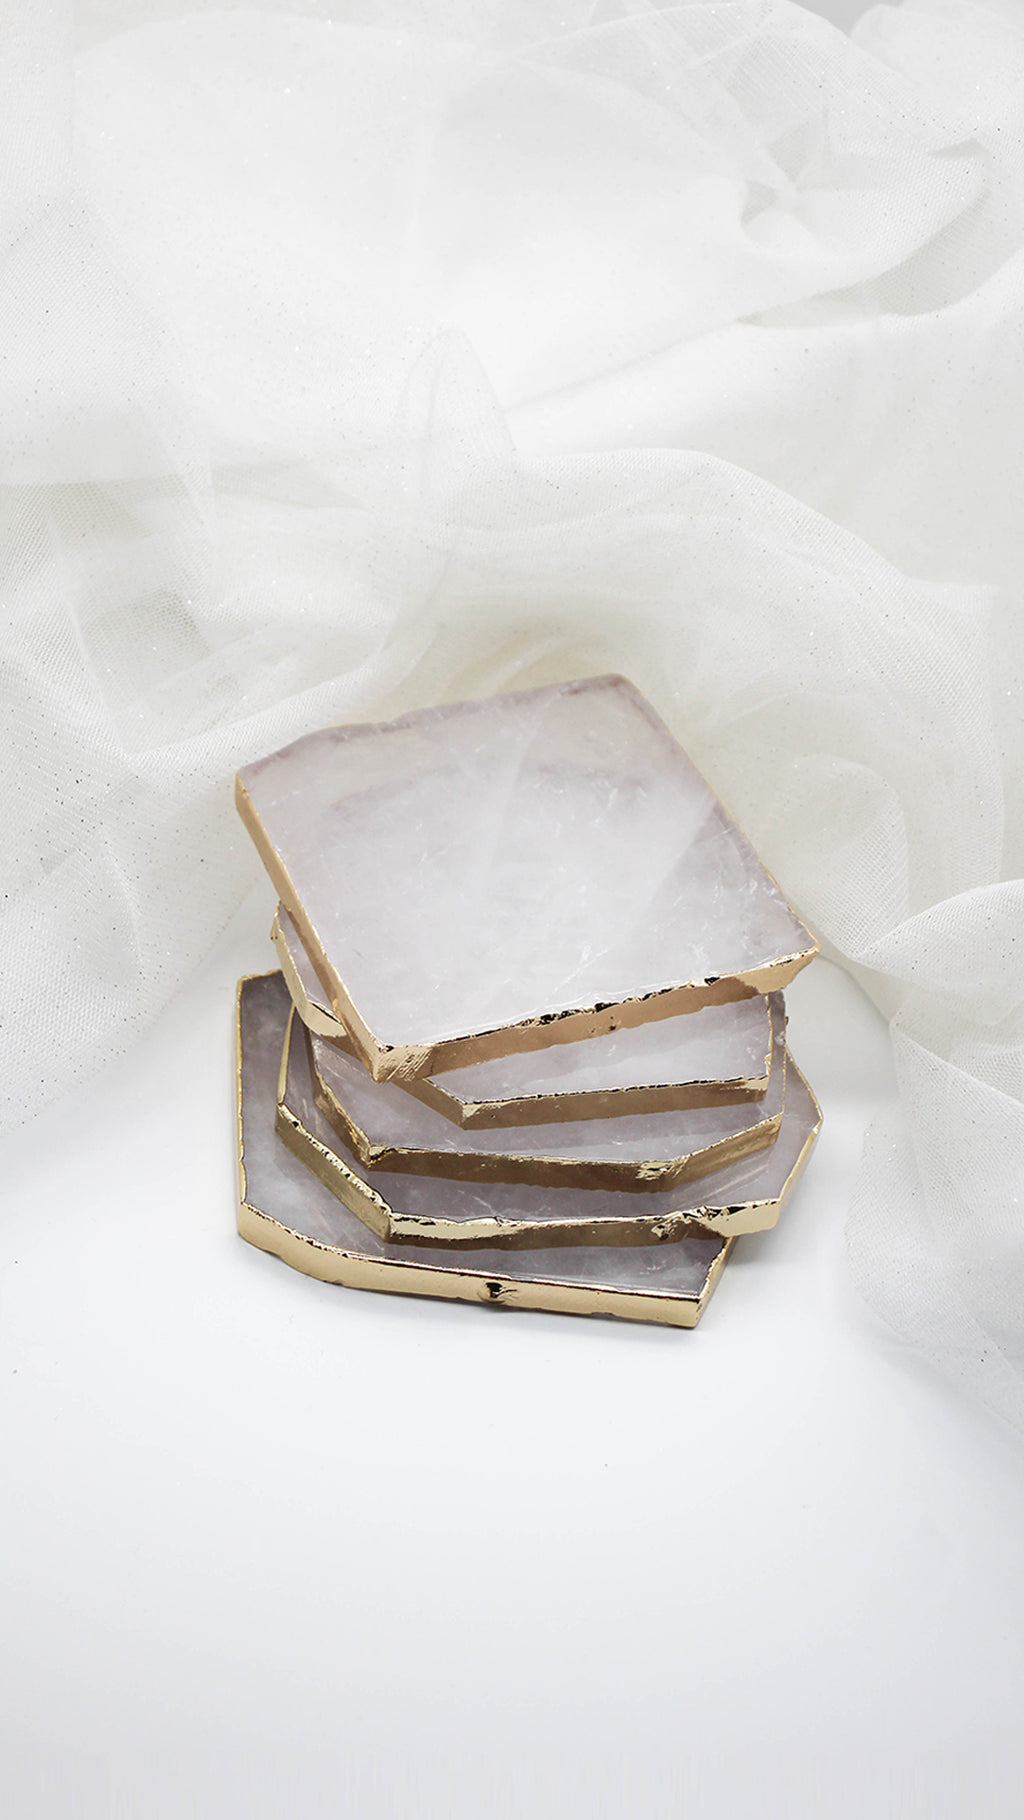 [PRE ORDER] Clear Quartz - Jewelry Coaster (Single Coaster) - Ships December 10th